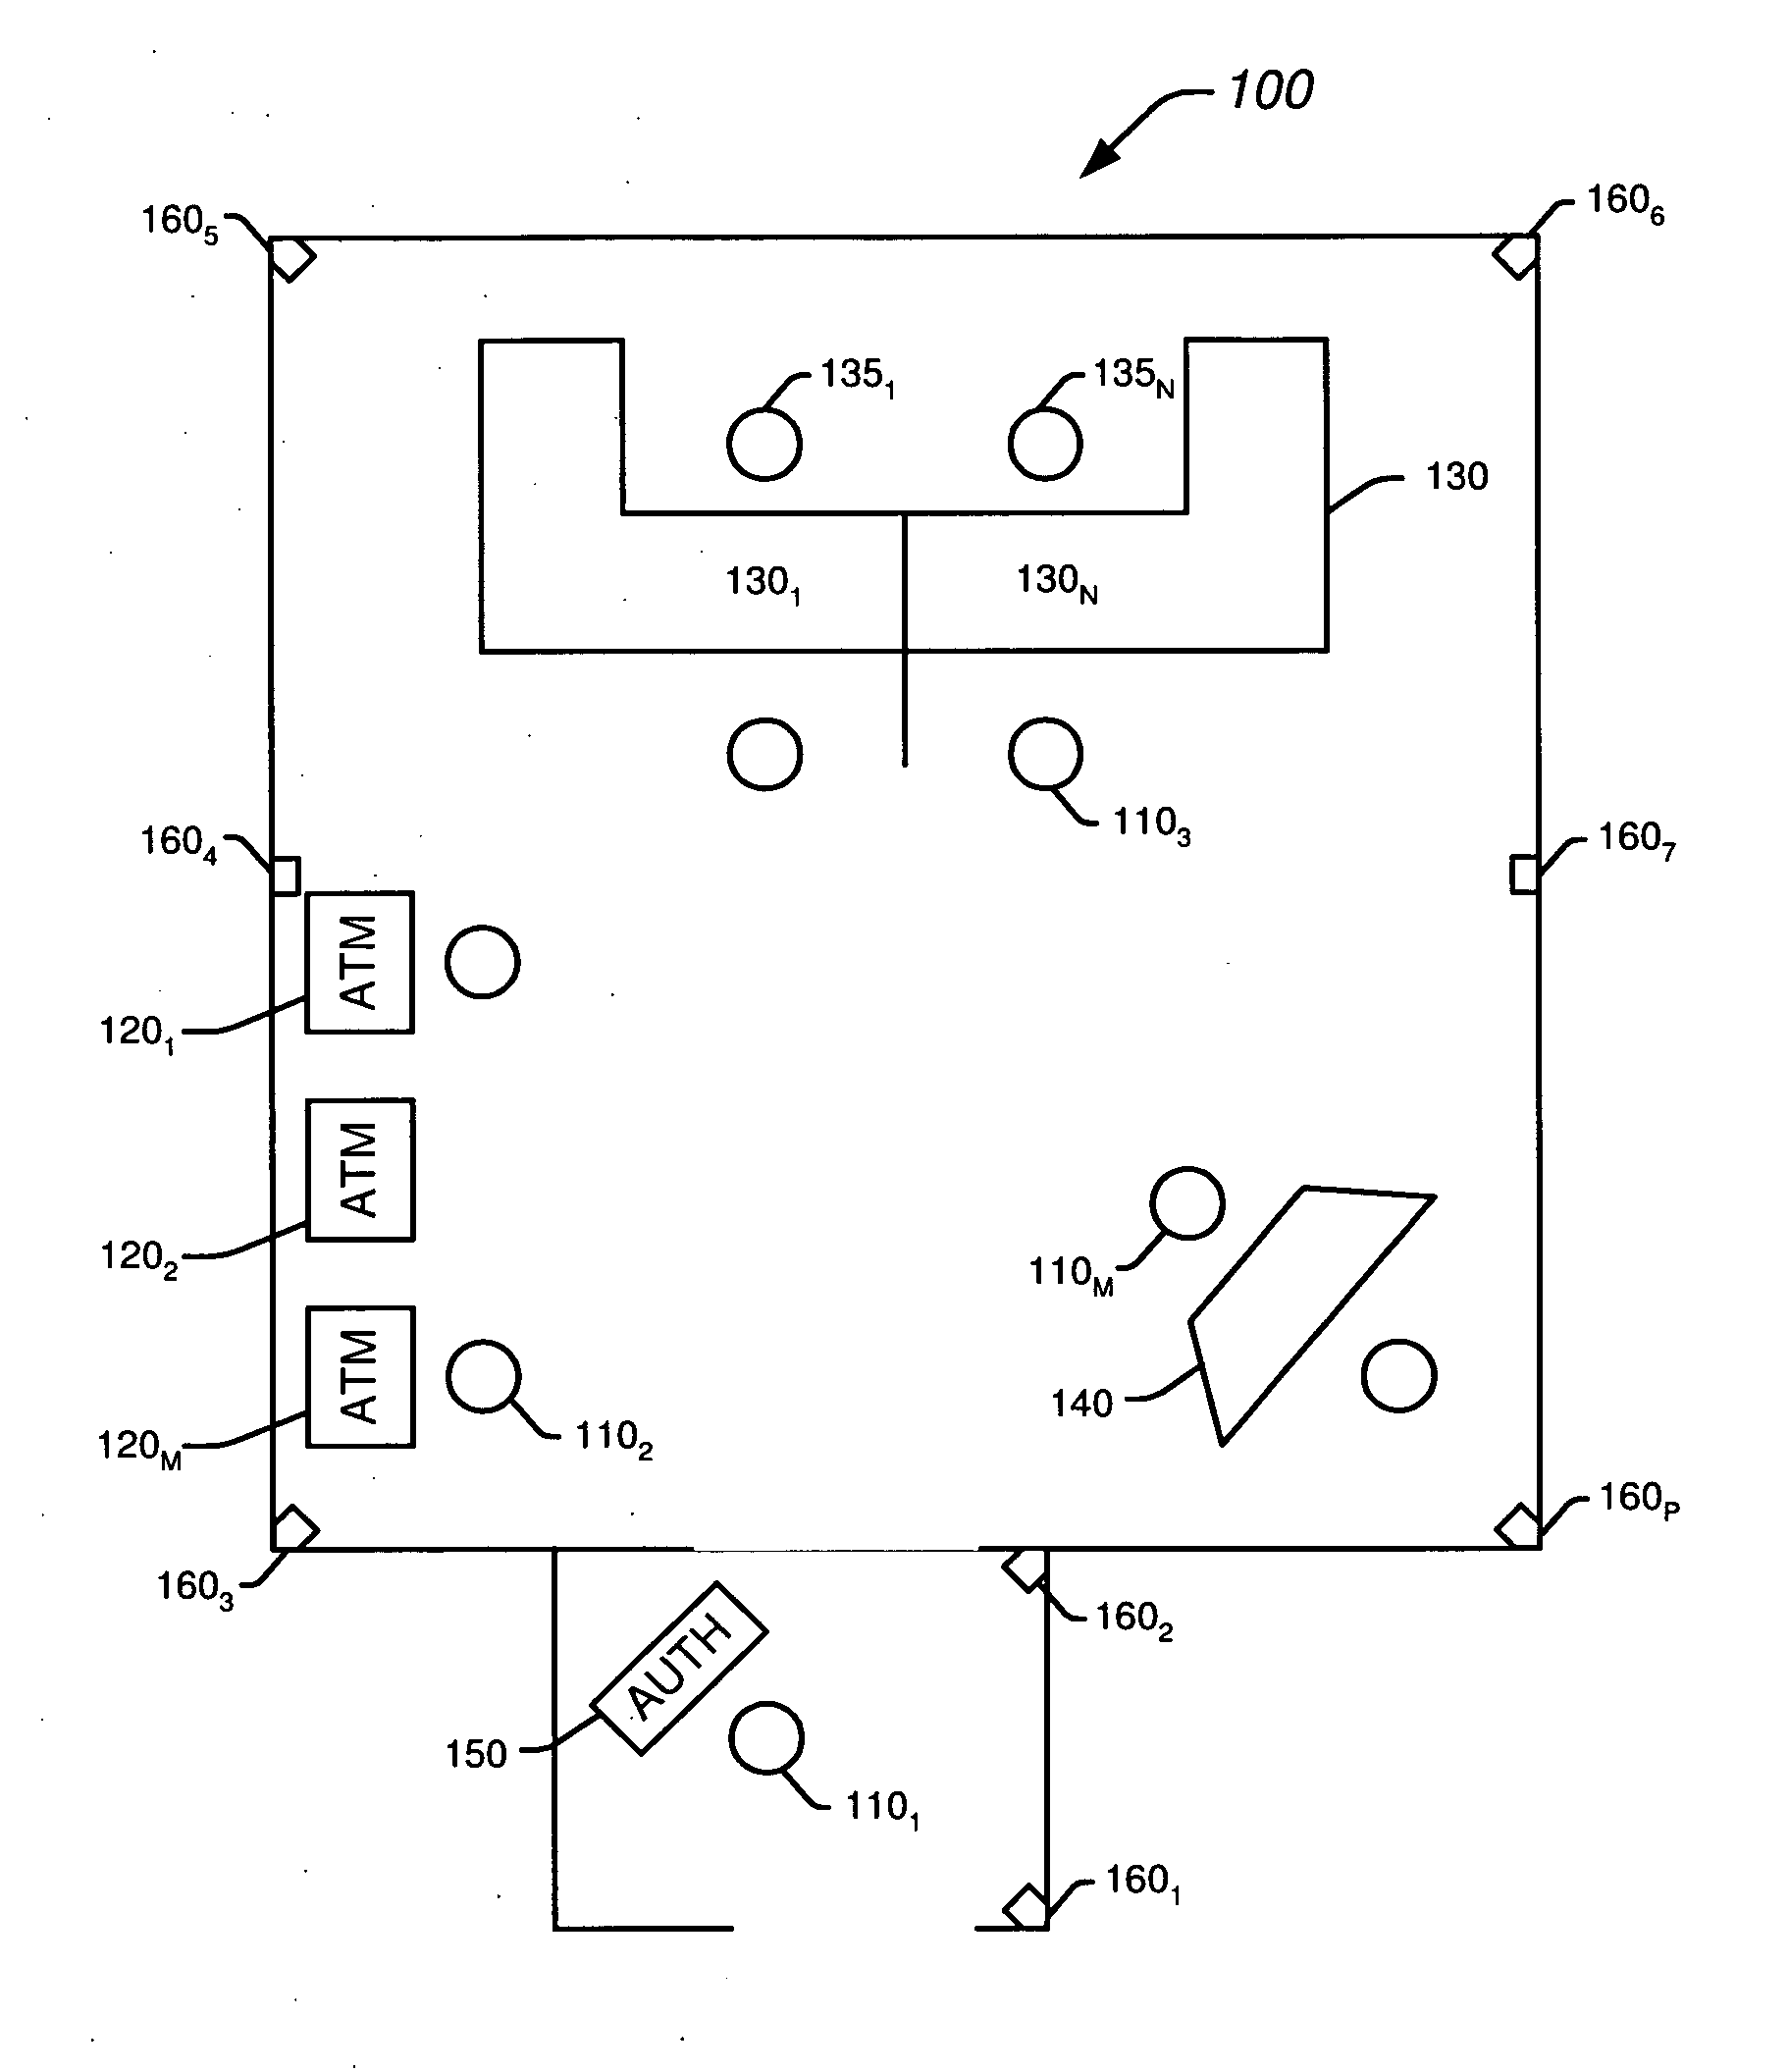 us20090165092 sustained authentication of a Bank Teller Resume Terminology patent drawing